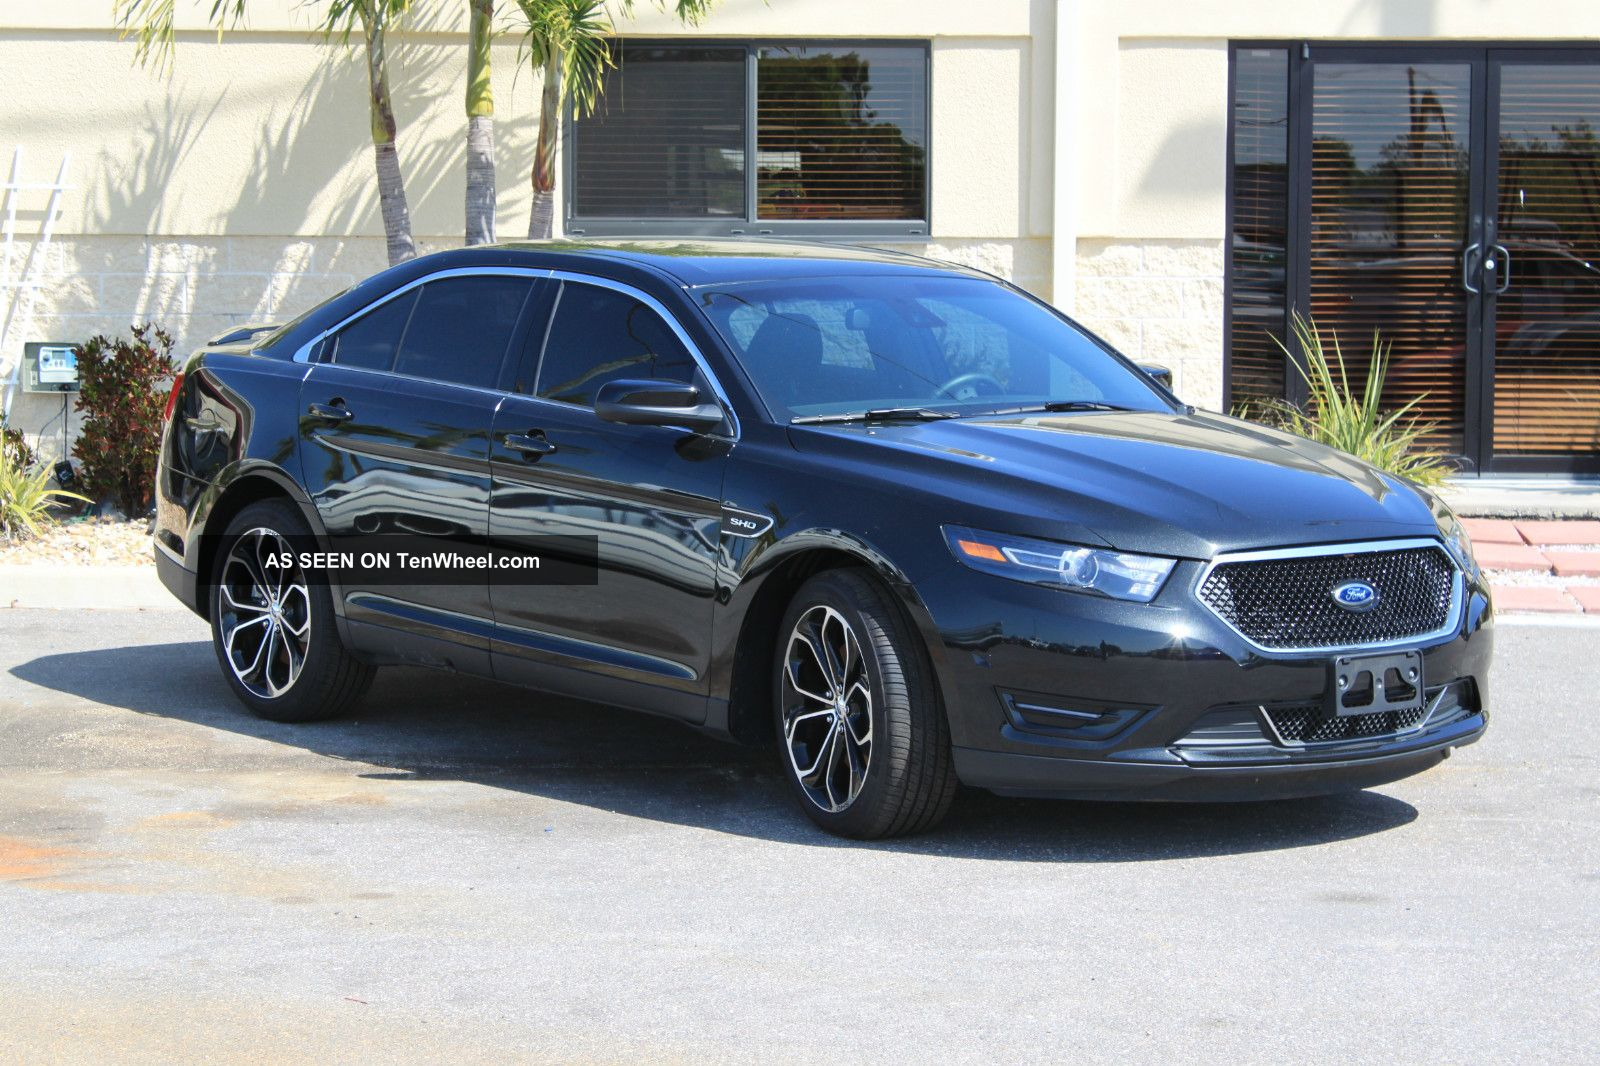 2013 ford taurus sho florida rebuildable title does not run its all. Black Bedroom Furniture Sets. Home Design Ideas